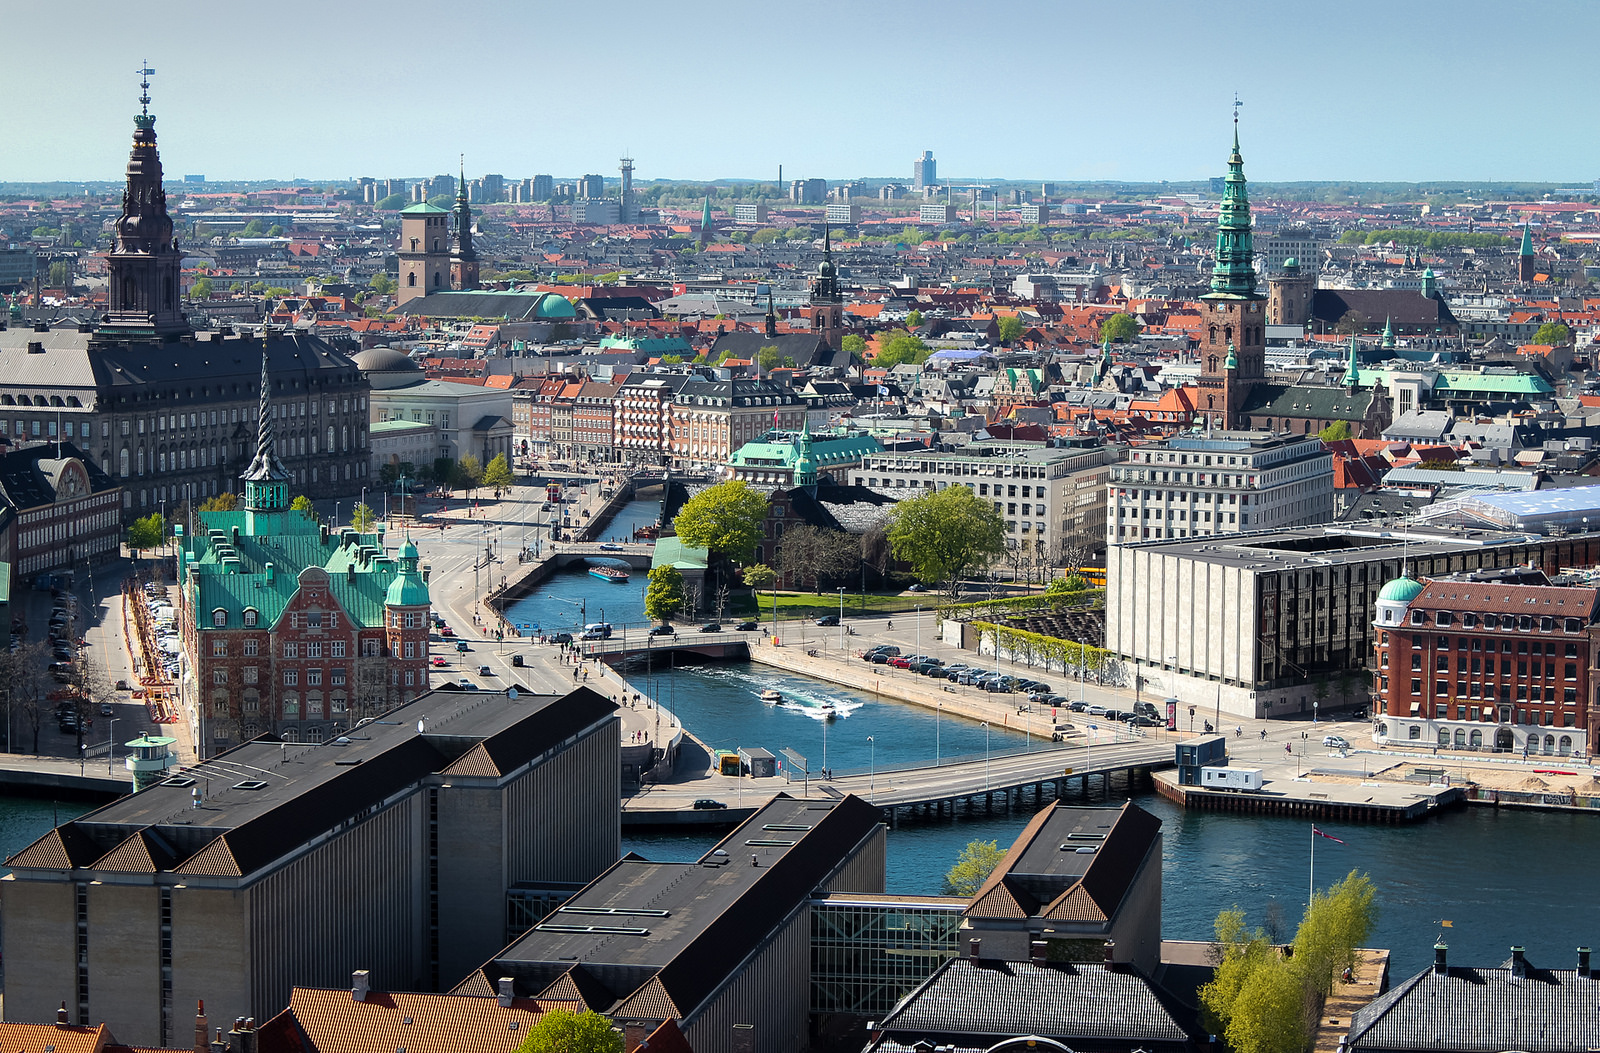 Onboard Airline Check-In is available for select cruises from Denmark's Port of Copenhagen. No excess baggage; guests can enjoy the last day of their cruise.